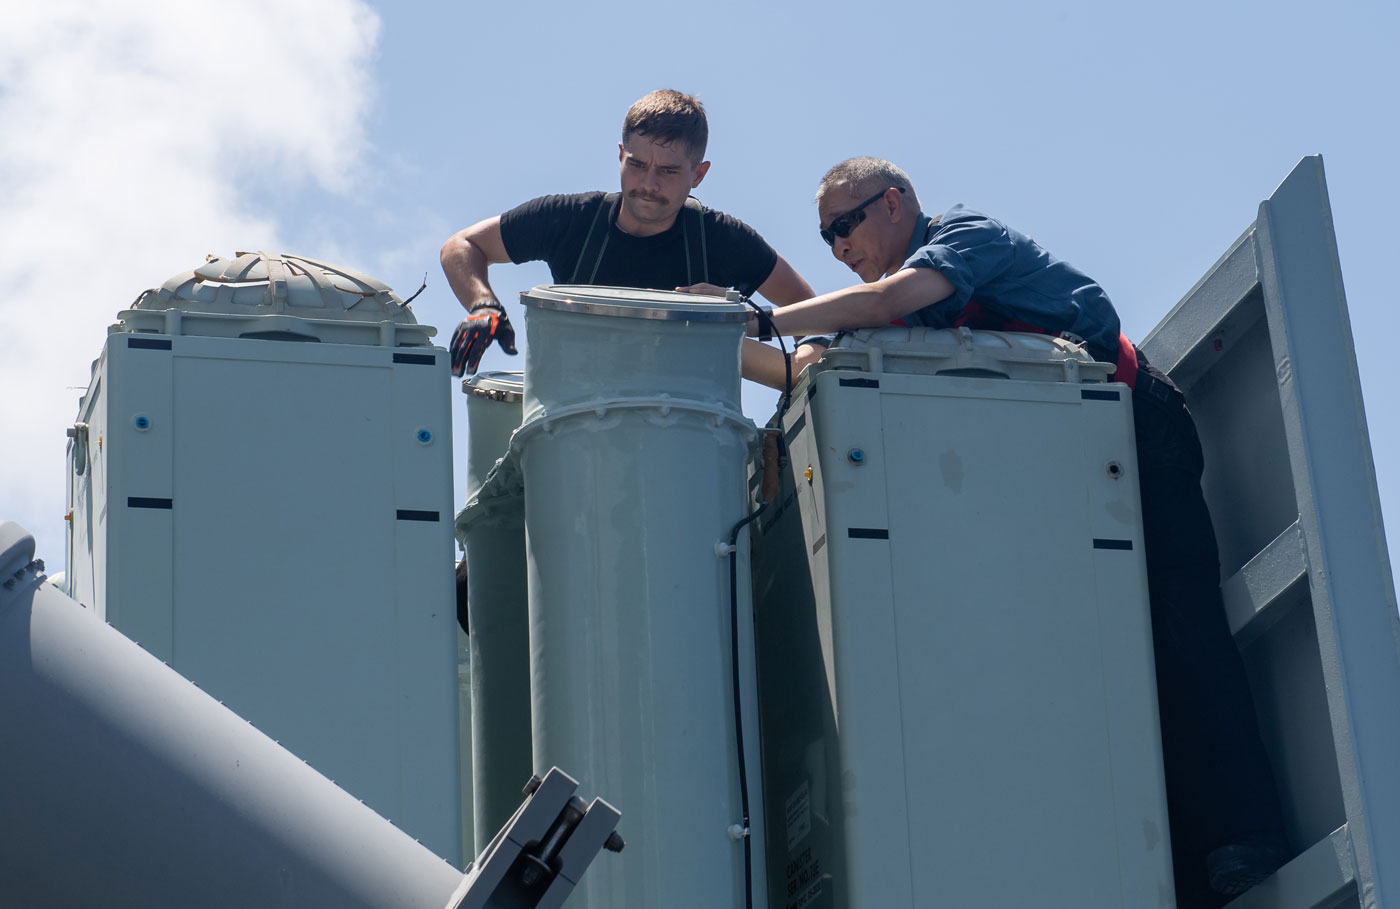 Members of HMCS Winnipeg conduct post-firing maintenance on the Evolved Sea Sparrow Missile (ESSM) launcher off the coast of the Hawaiian Islands. Photos by Leading Seaman Valerie LeClair, MARPAC Imaging